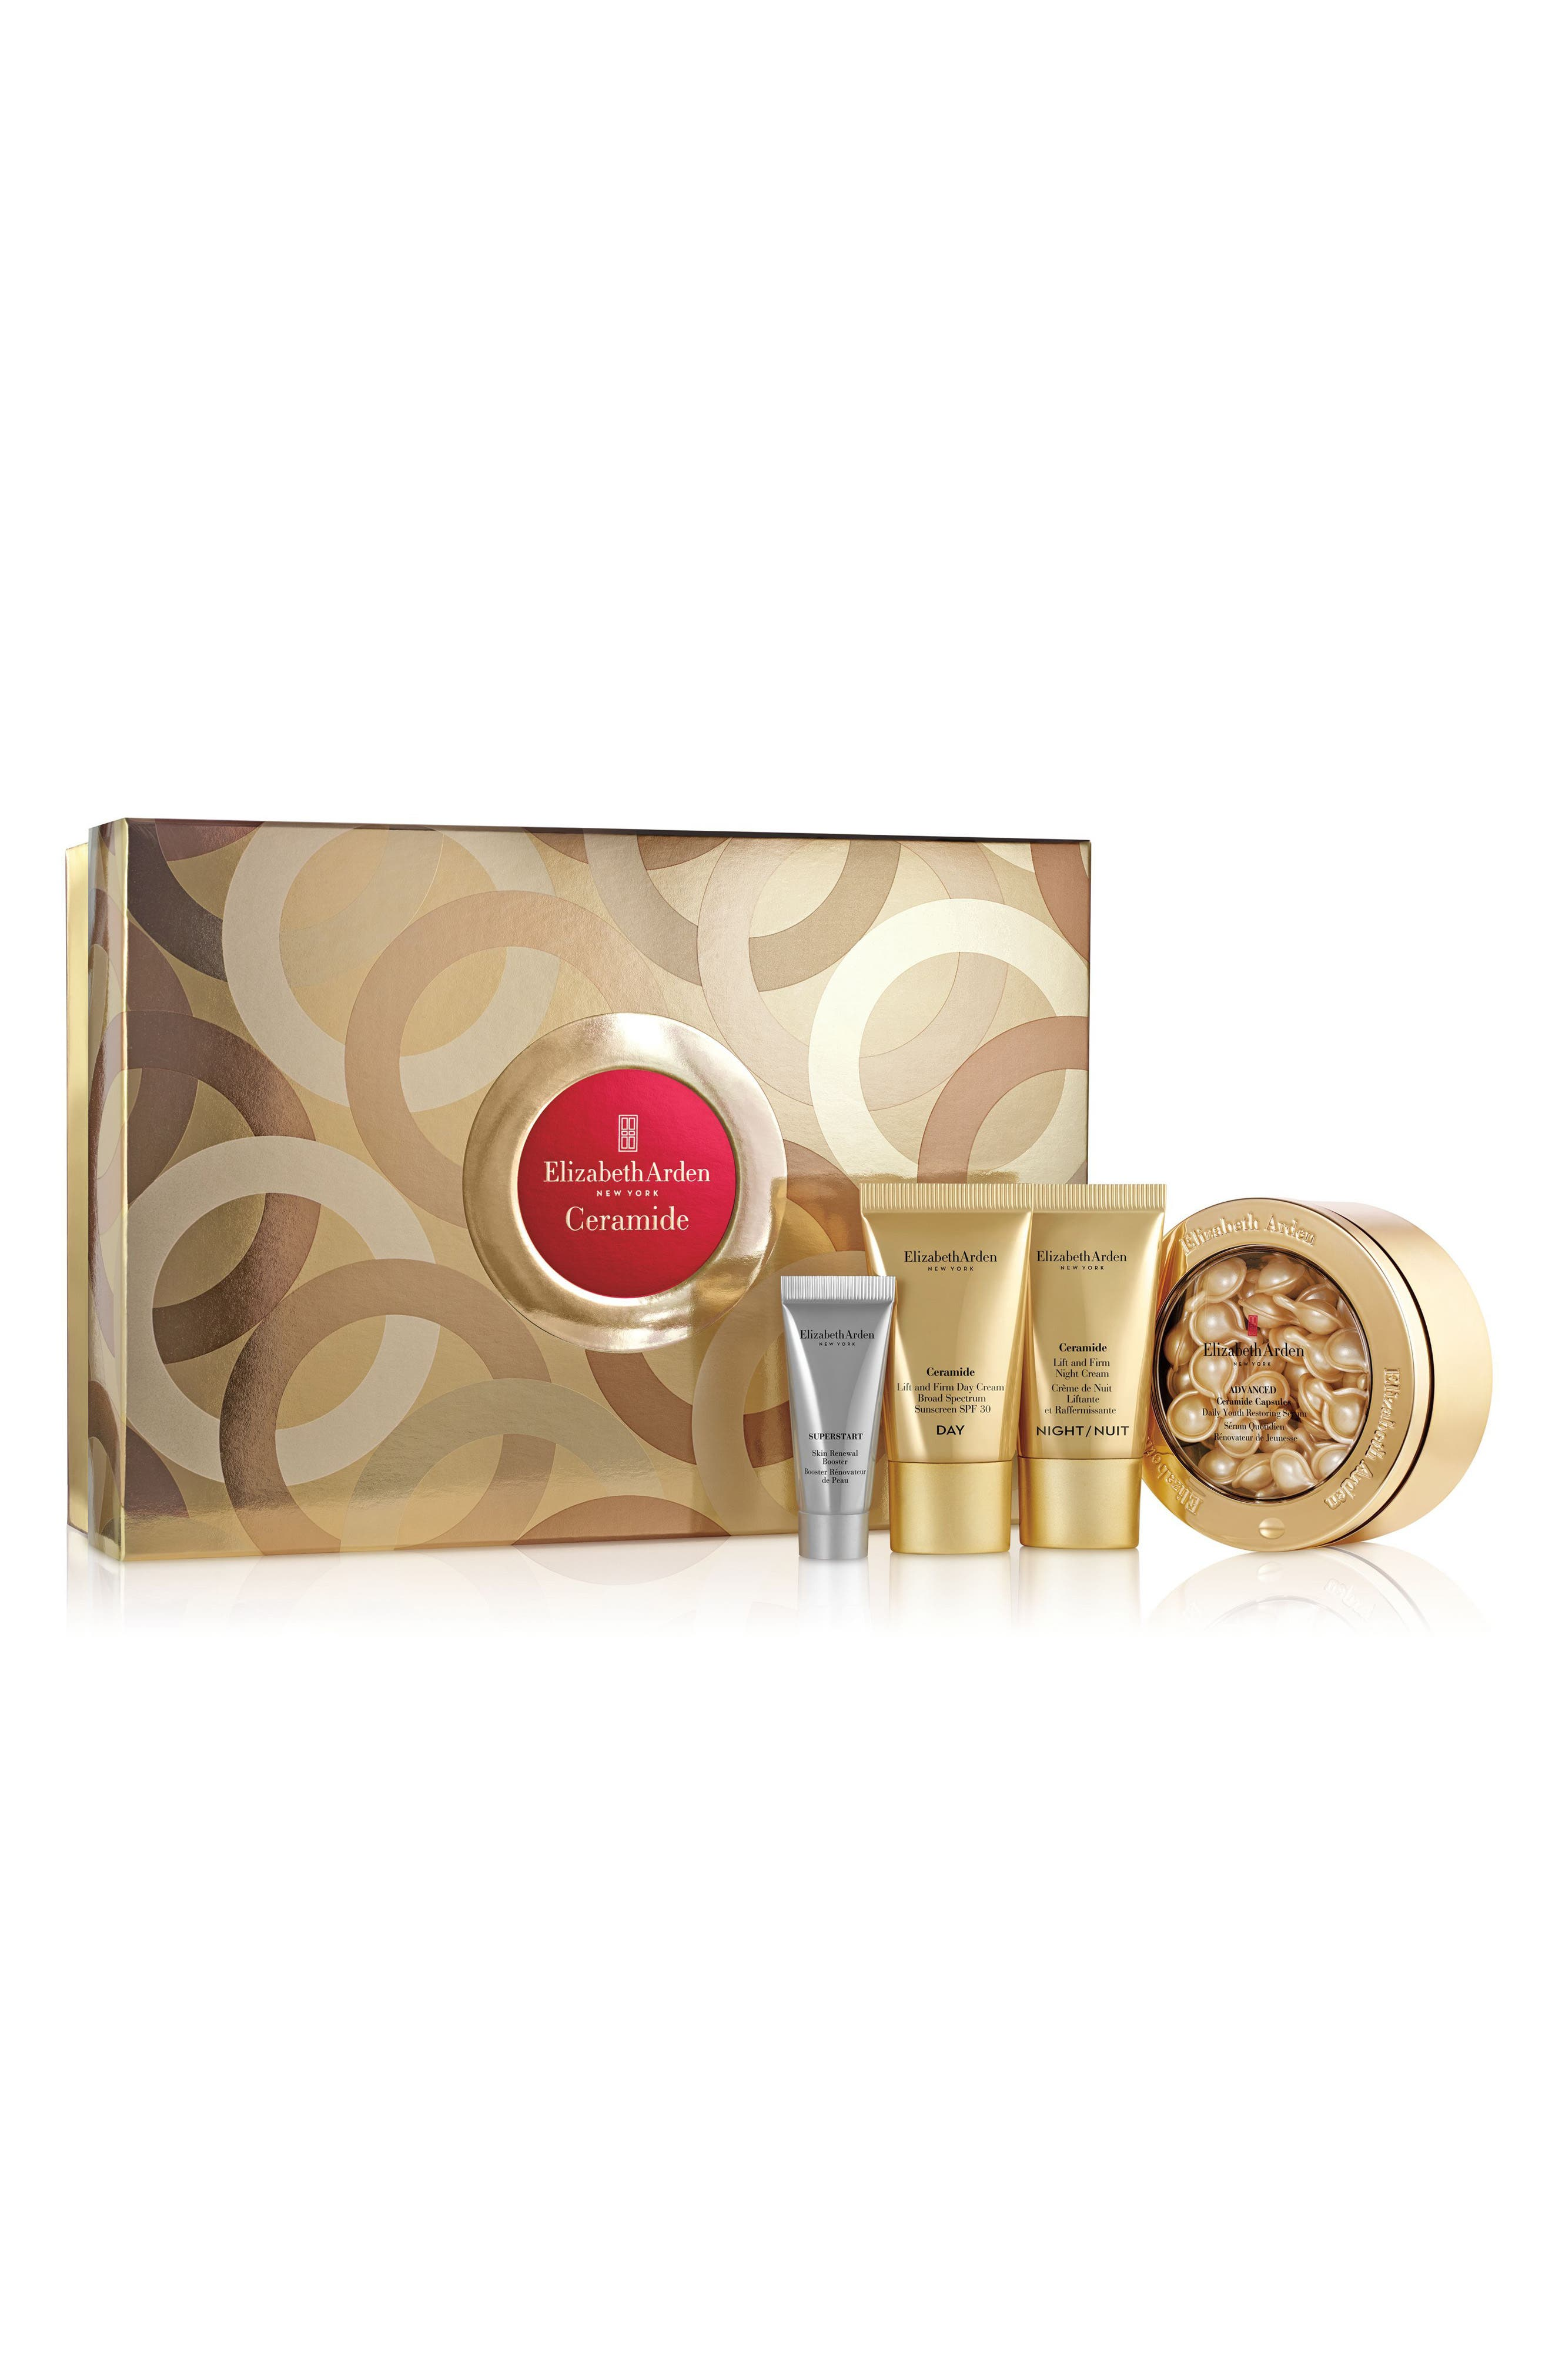 Elizabeth Arden Ceramide Lift & Firm Set ($134 Value)